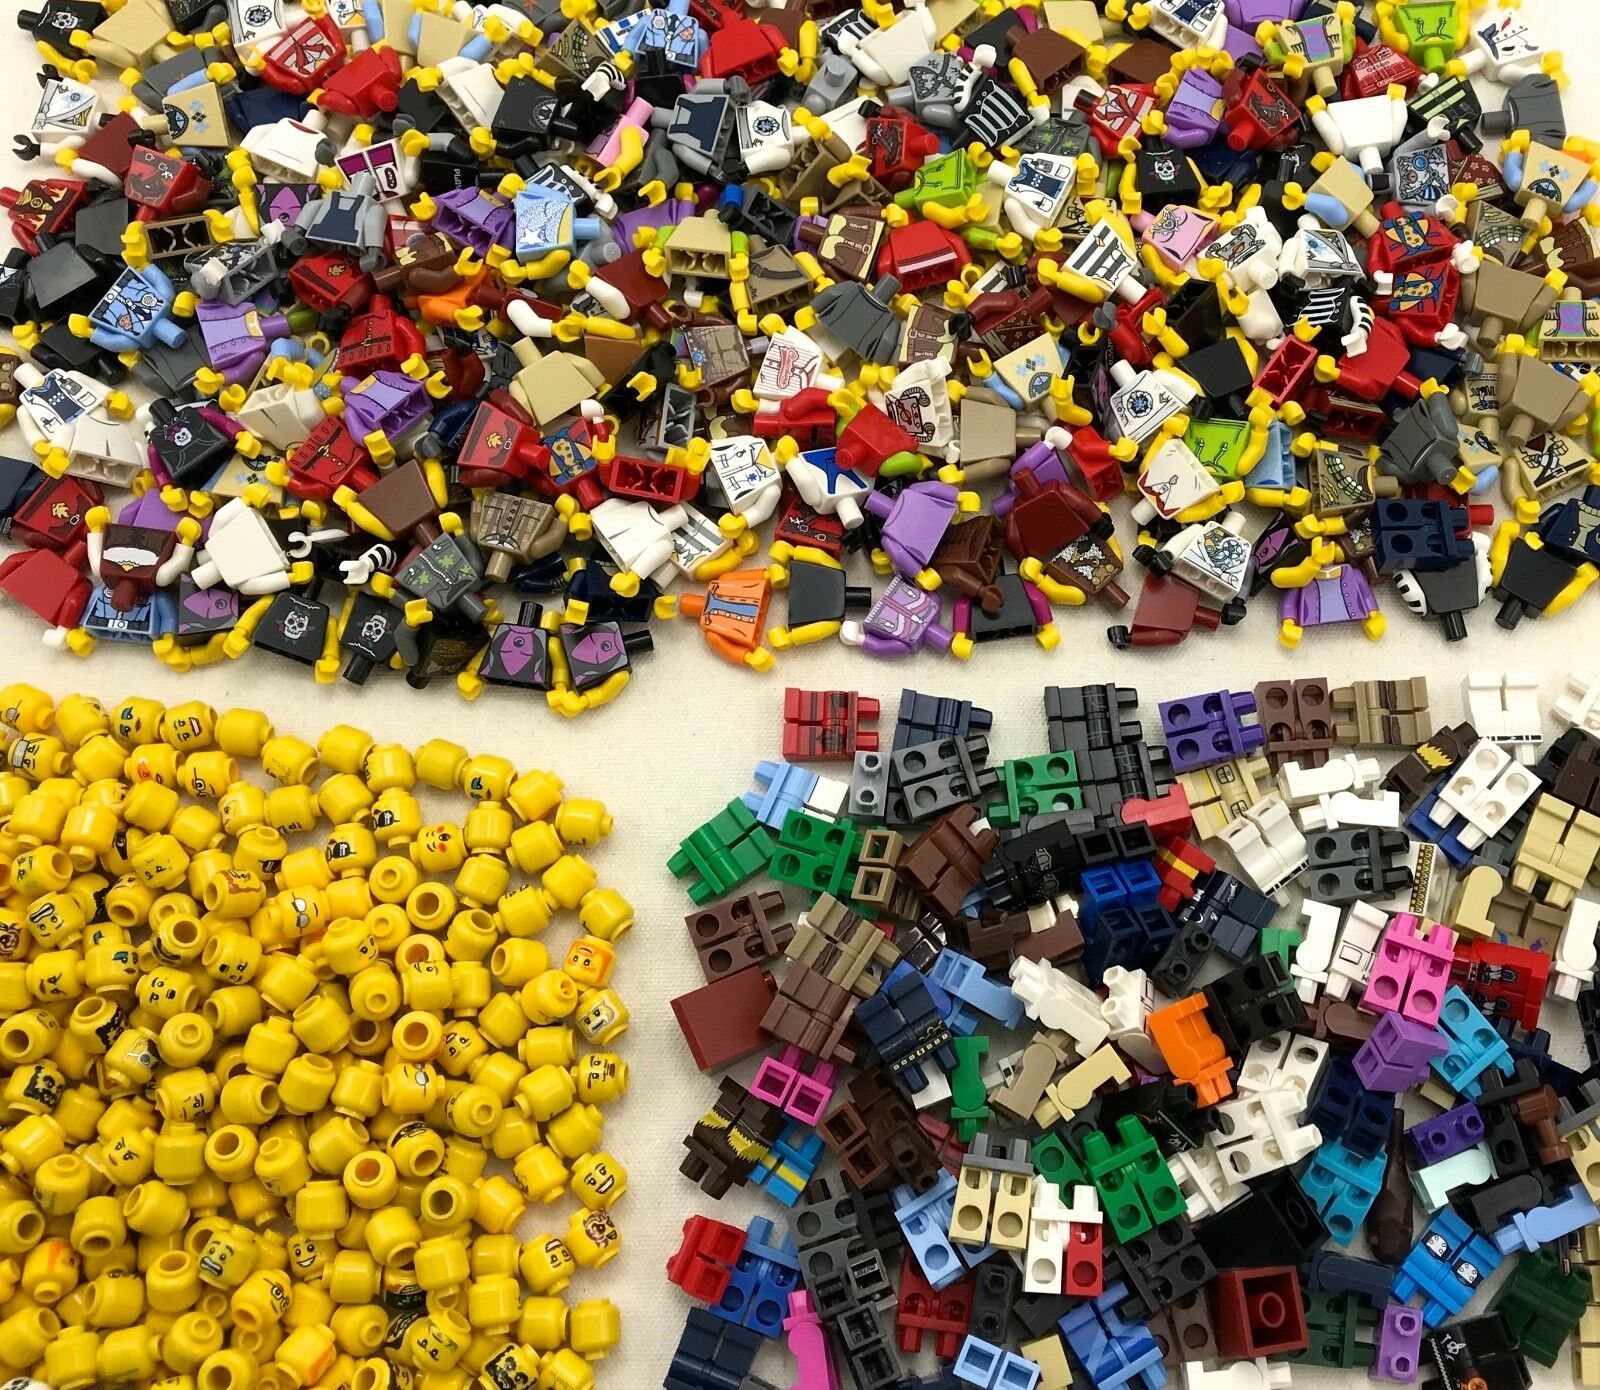 LEGO LOT OF 500 NEW LEGO MINIFIGURES TOWN CITY SERIES BOY GIRL FIGURE PIECES